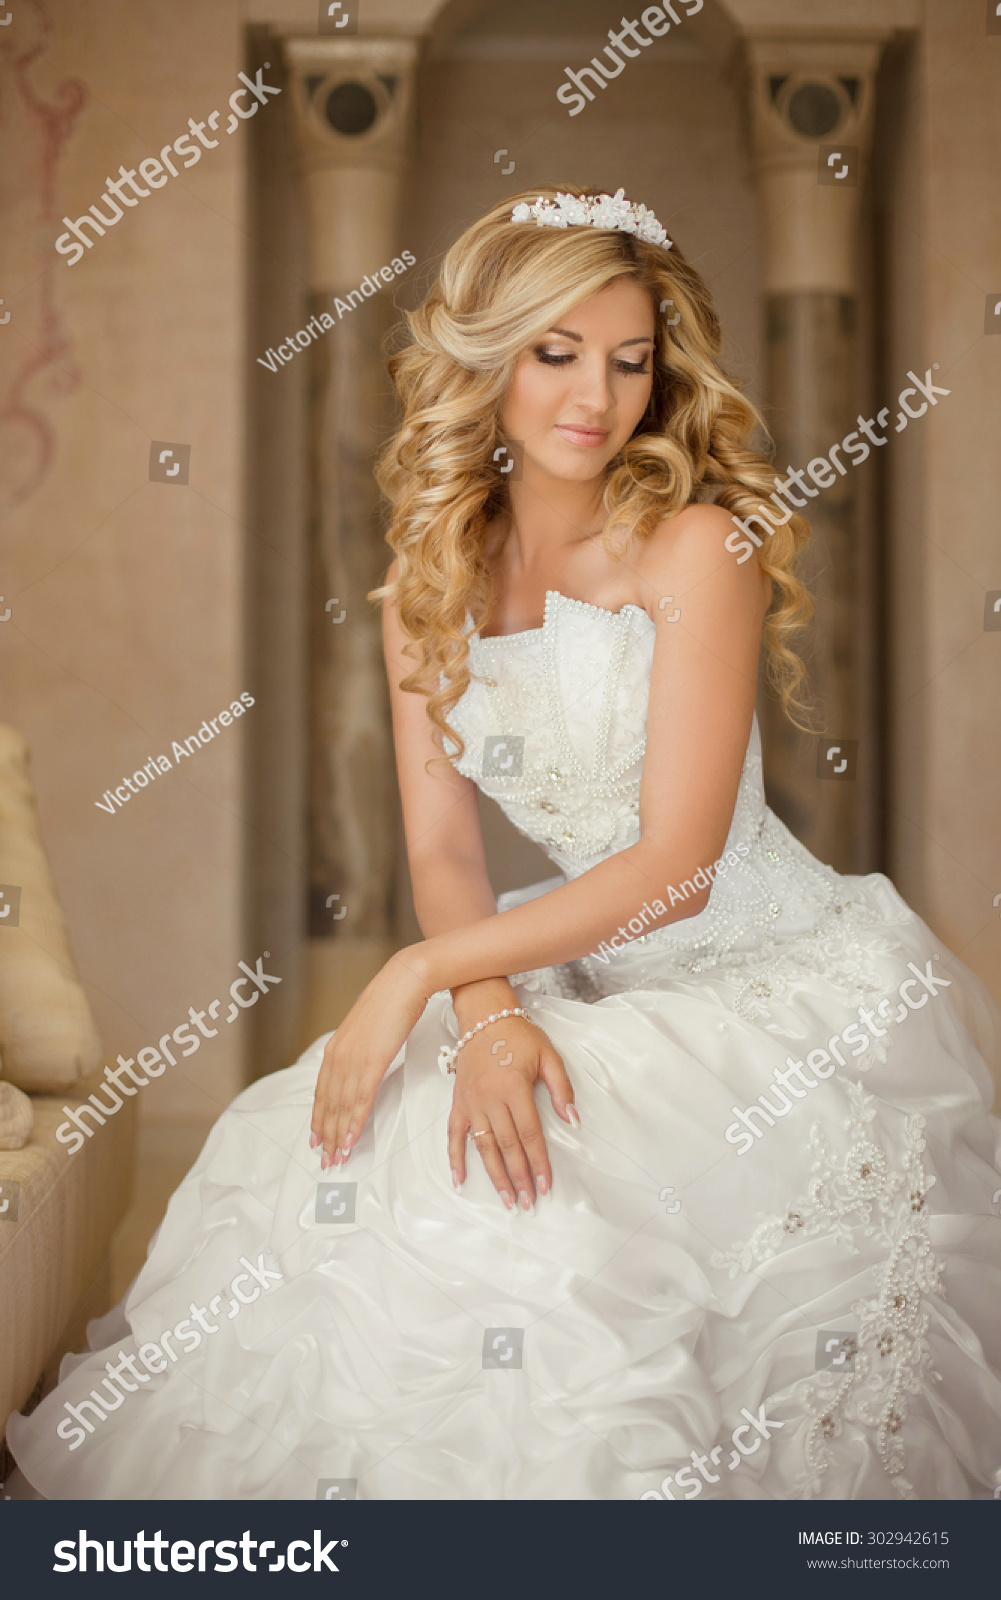 Attractive Young Bride Woman Wedding Dress Stock Photo Edit Now 302942615